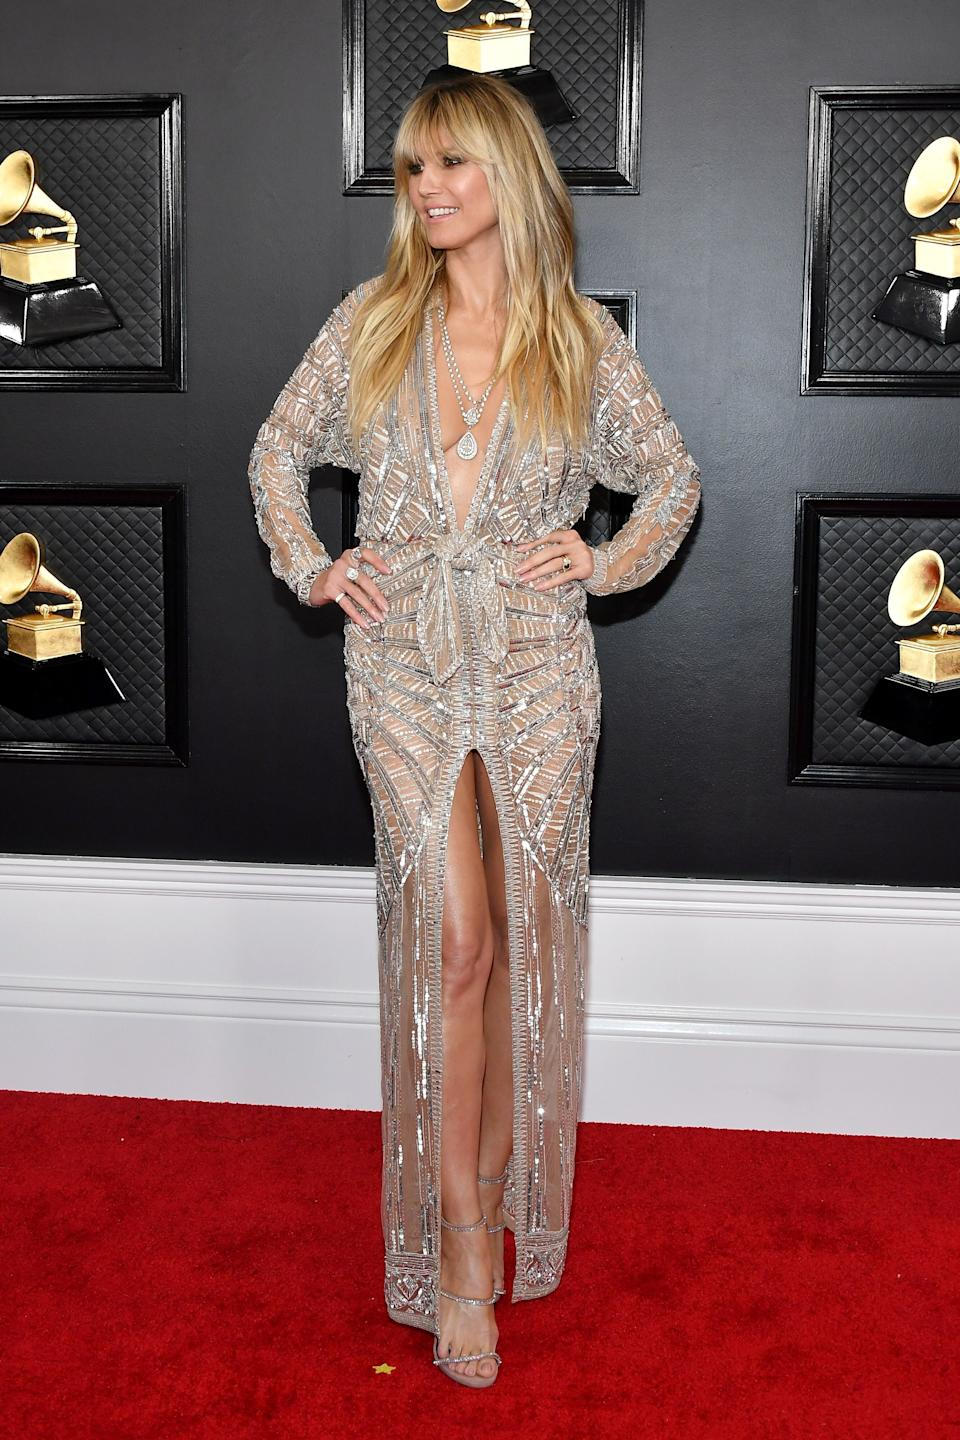 """The pattern is glam as can be, but the high front slit and excessively low neckline make it look a bit flimsy. But hey: it's definitely better than <a href=""""https://www.huffingtonpost.ca/entry/grammys-2019-red-carpet-best-worst_ca_5cd5889de4b07bc72978f2e2"""" target=""""_blank"""" rel=""""noopener noreferrer"""">what she wore last year</a>!"""